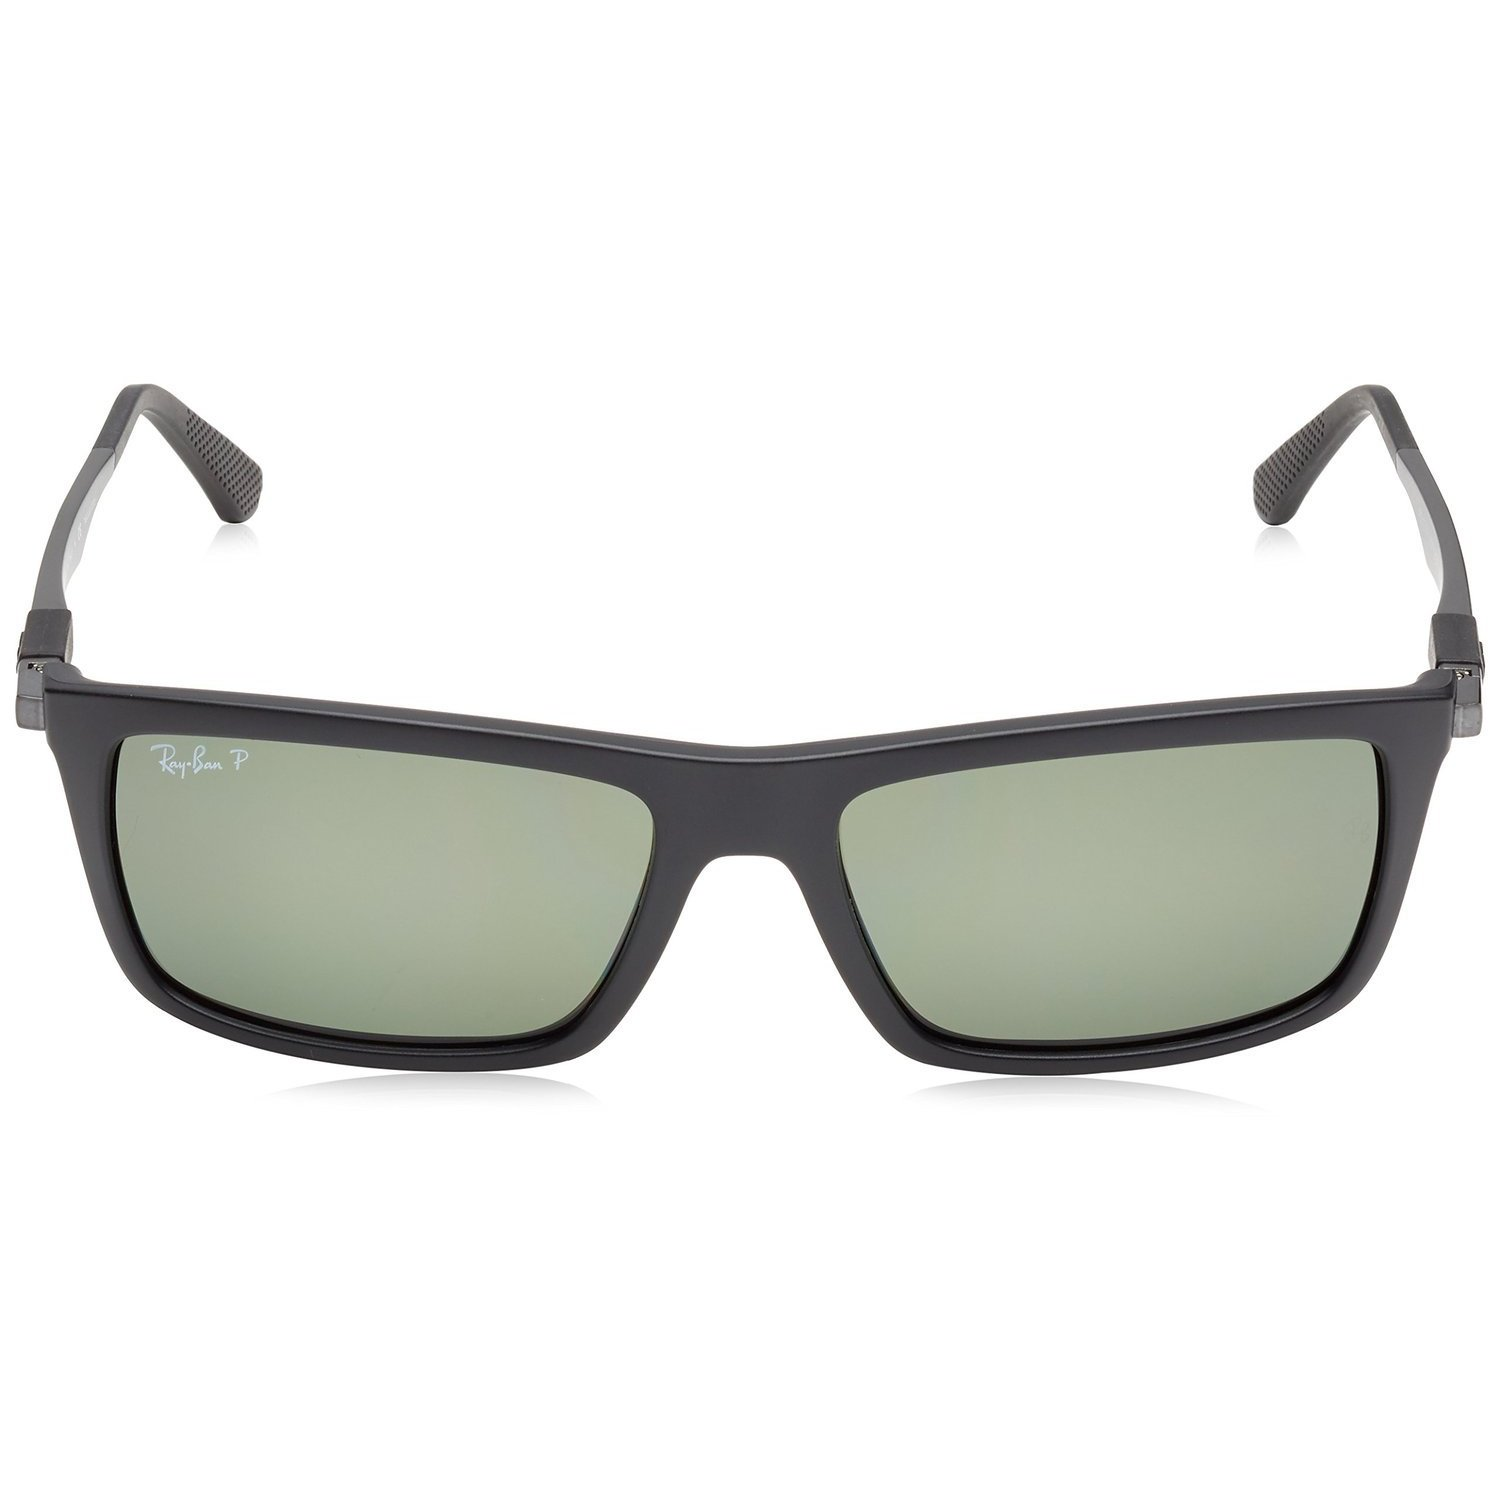 5aaa156424 Shop Ray-Ban RB4214 601S9A Unisex Black Gunmetal Frame Polarized Green  Classic Lens Sunglasses - Free Shipping Today - Overstock - 11707905